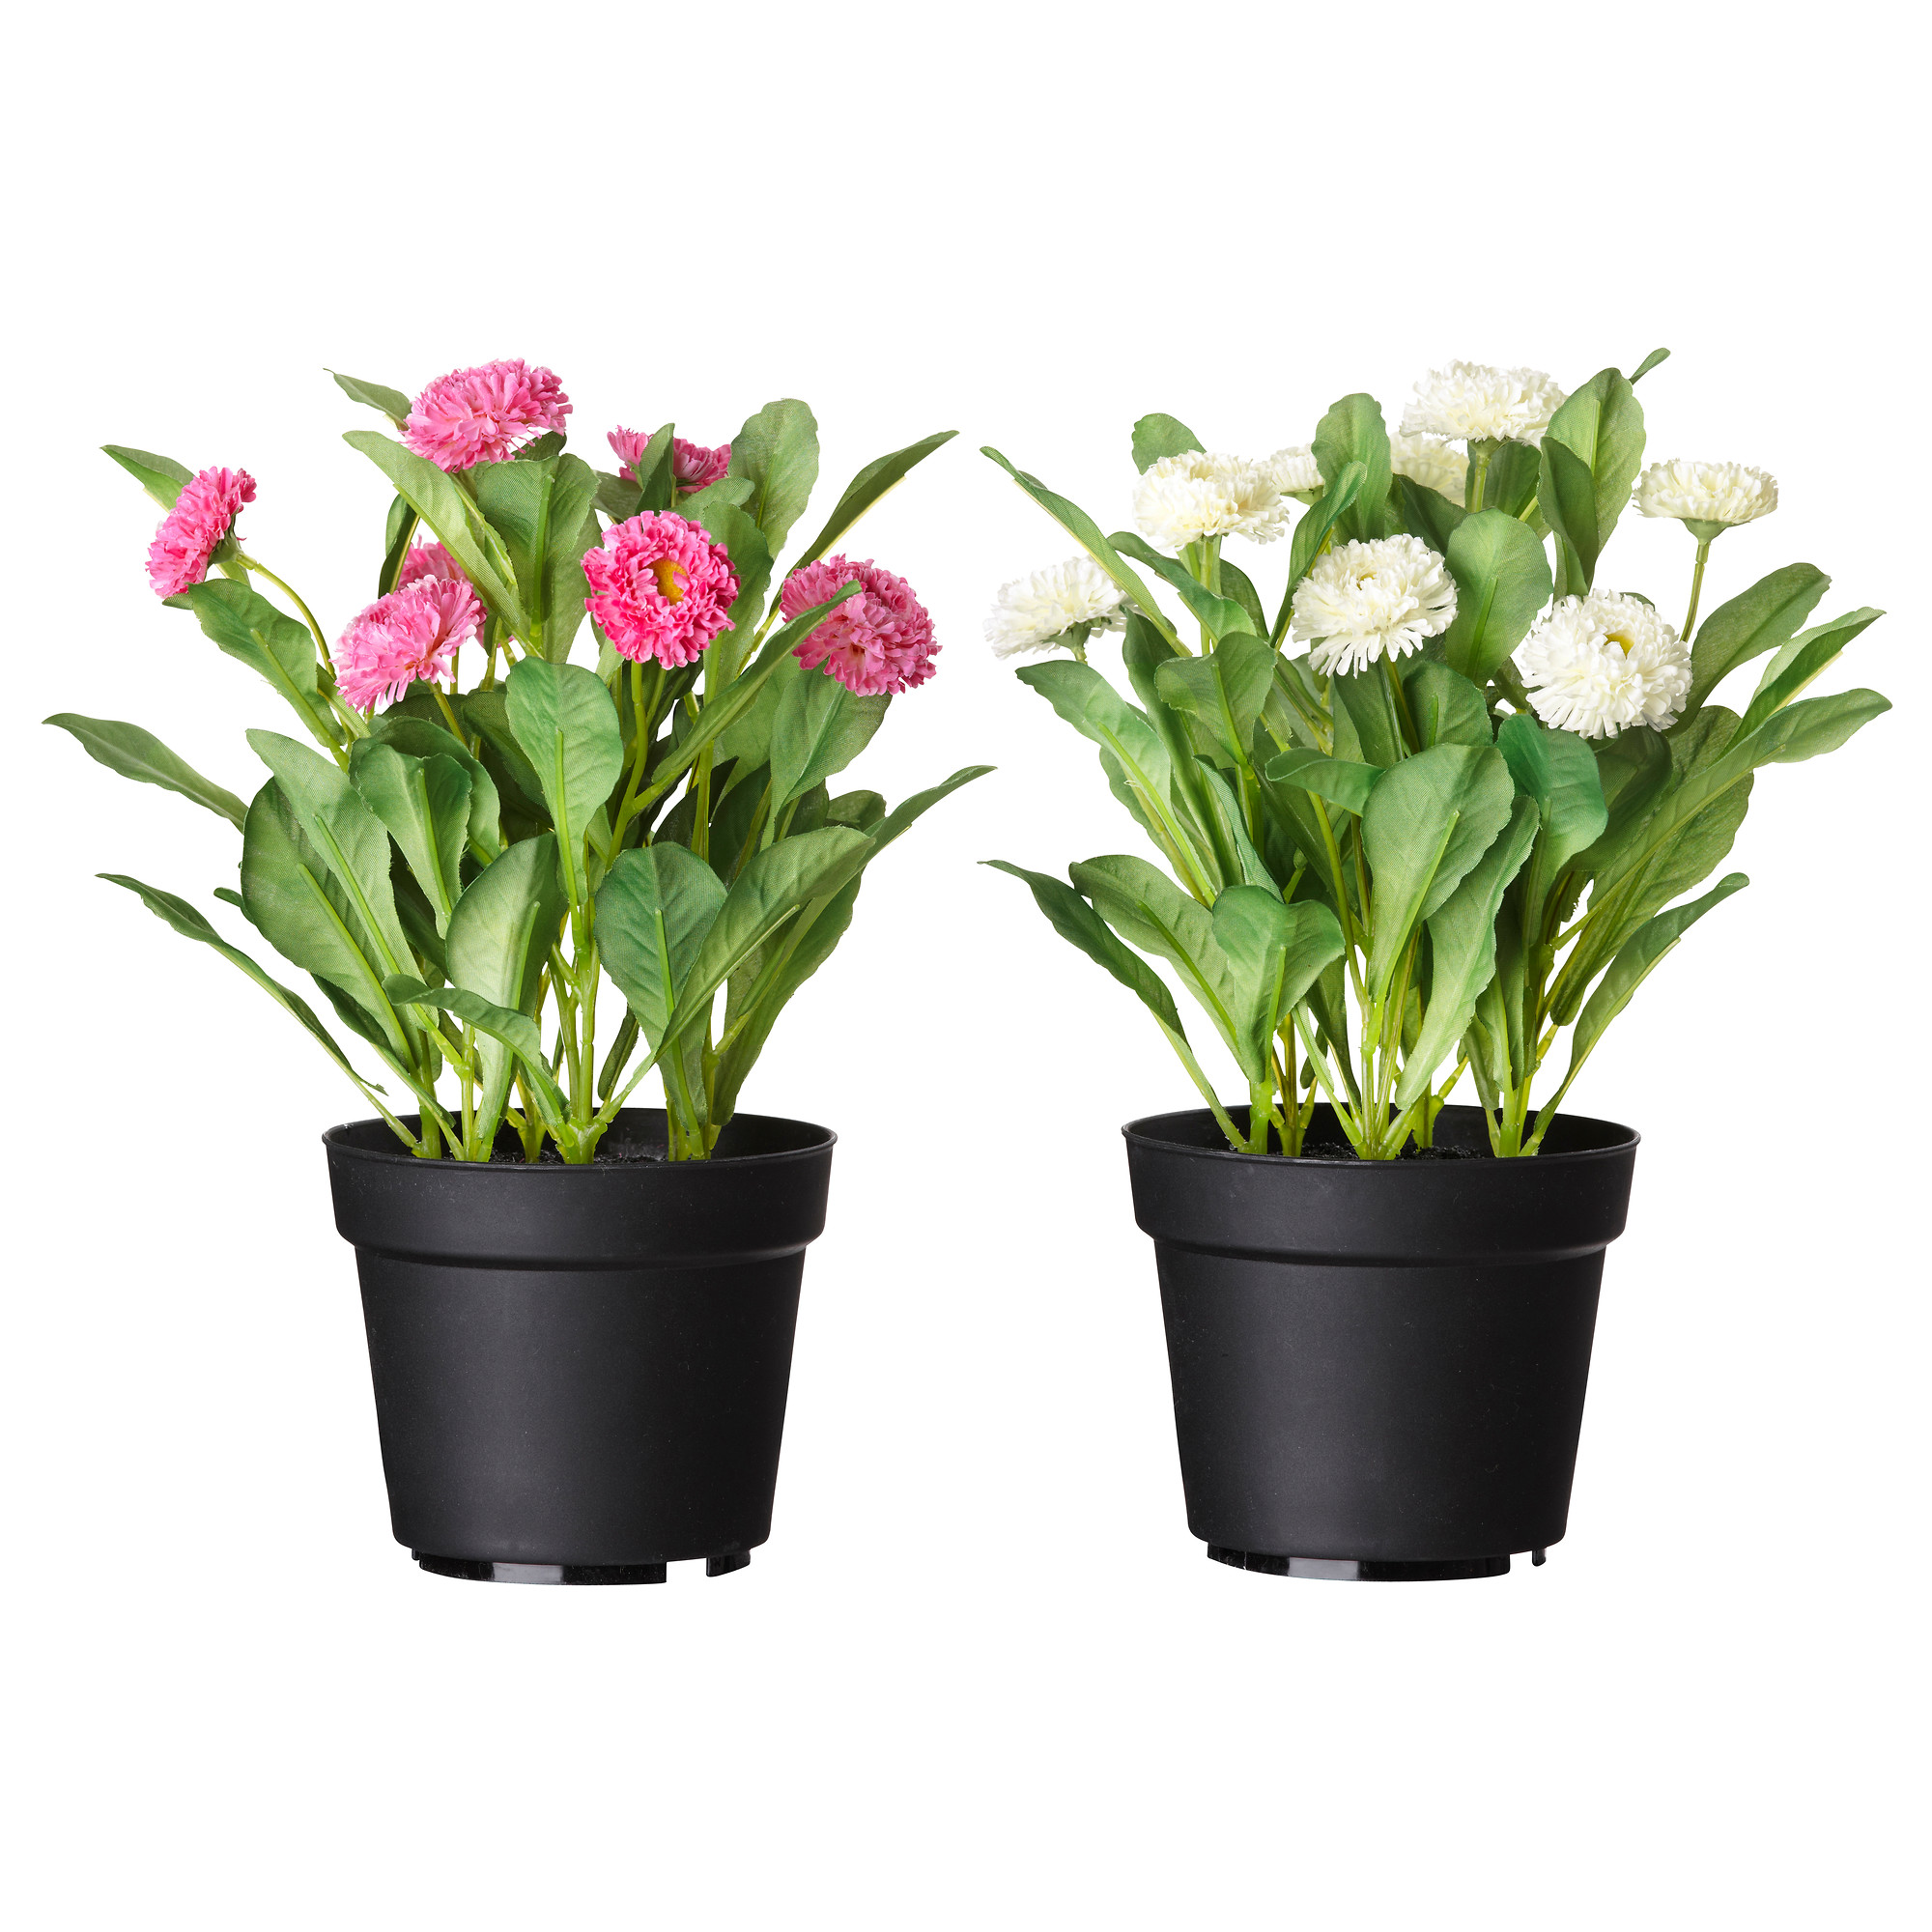 plant pots fejka artificial potted plant, common daisy assorted colors height: 10 ¼  UBEWEZE